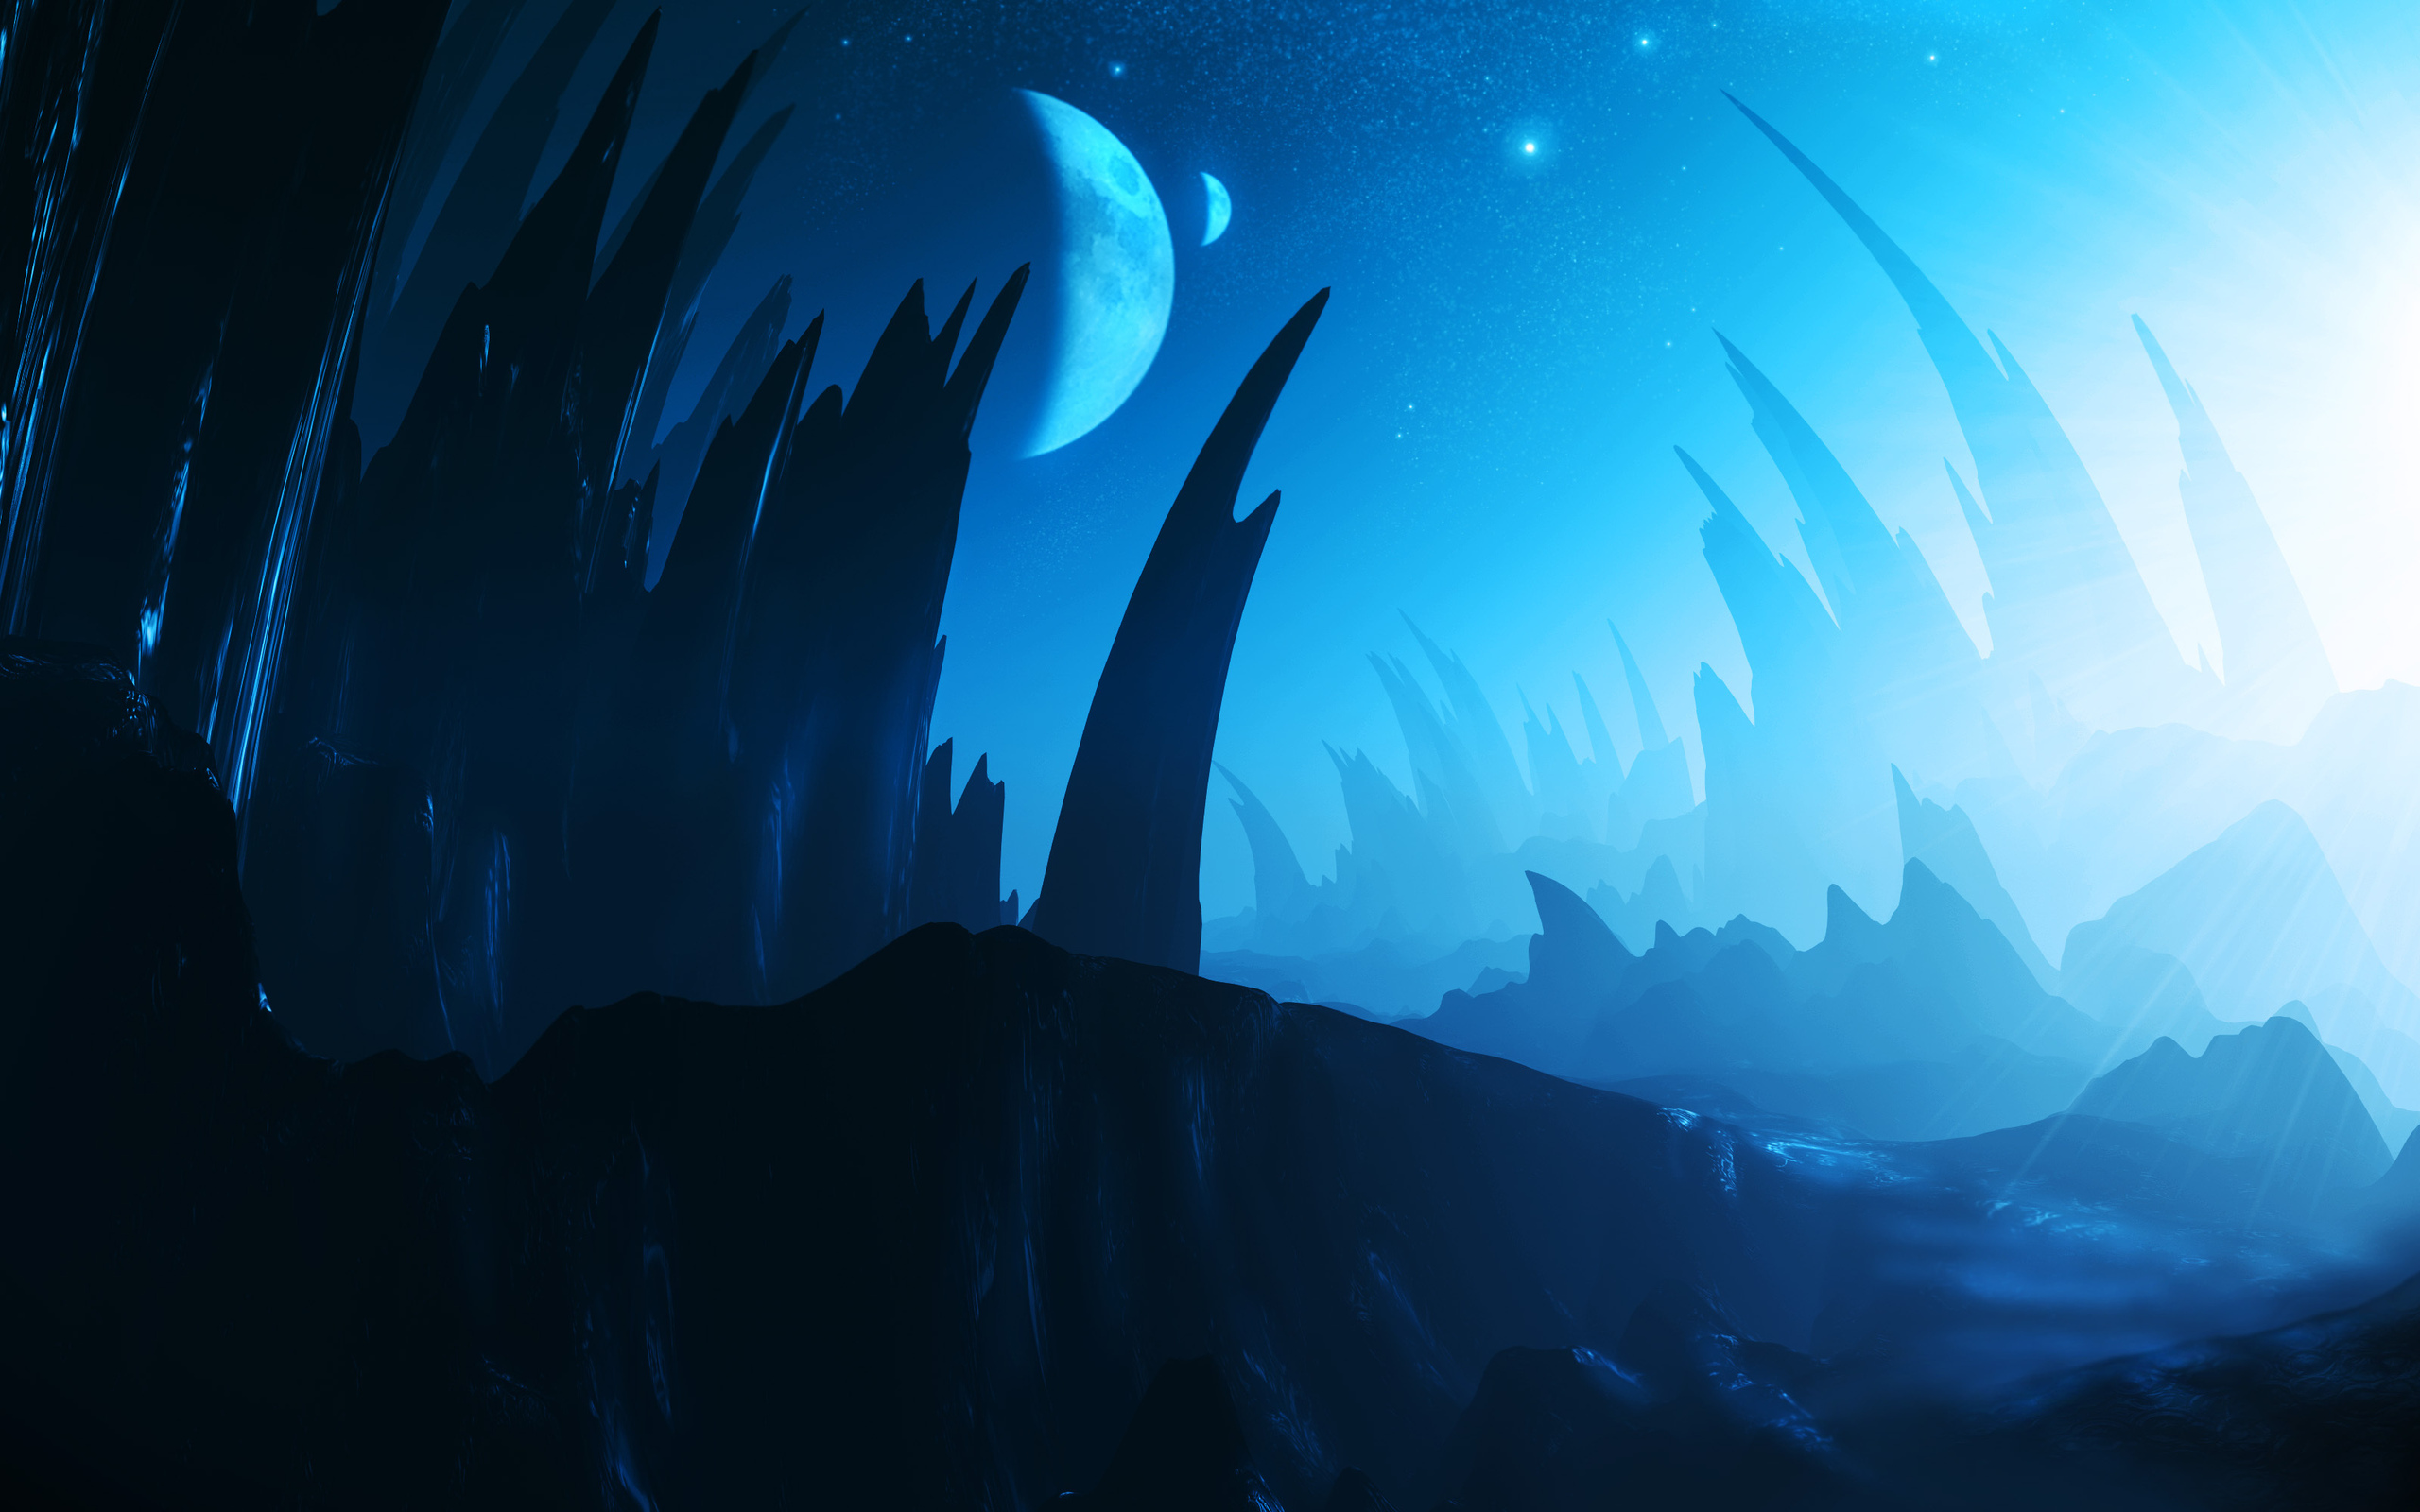 landscapes of planets like earth - photo #16